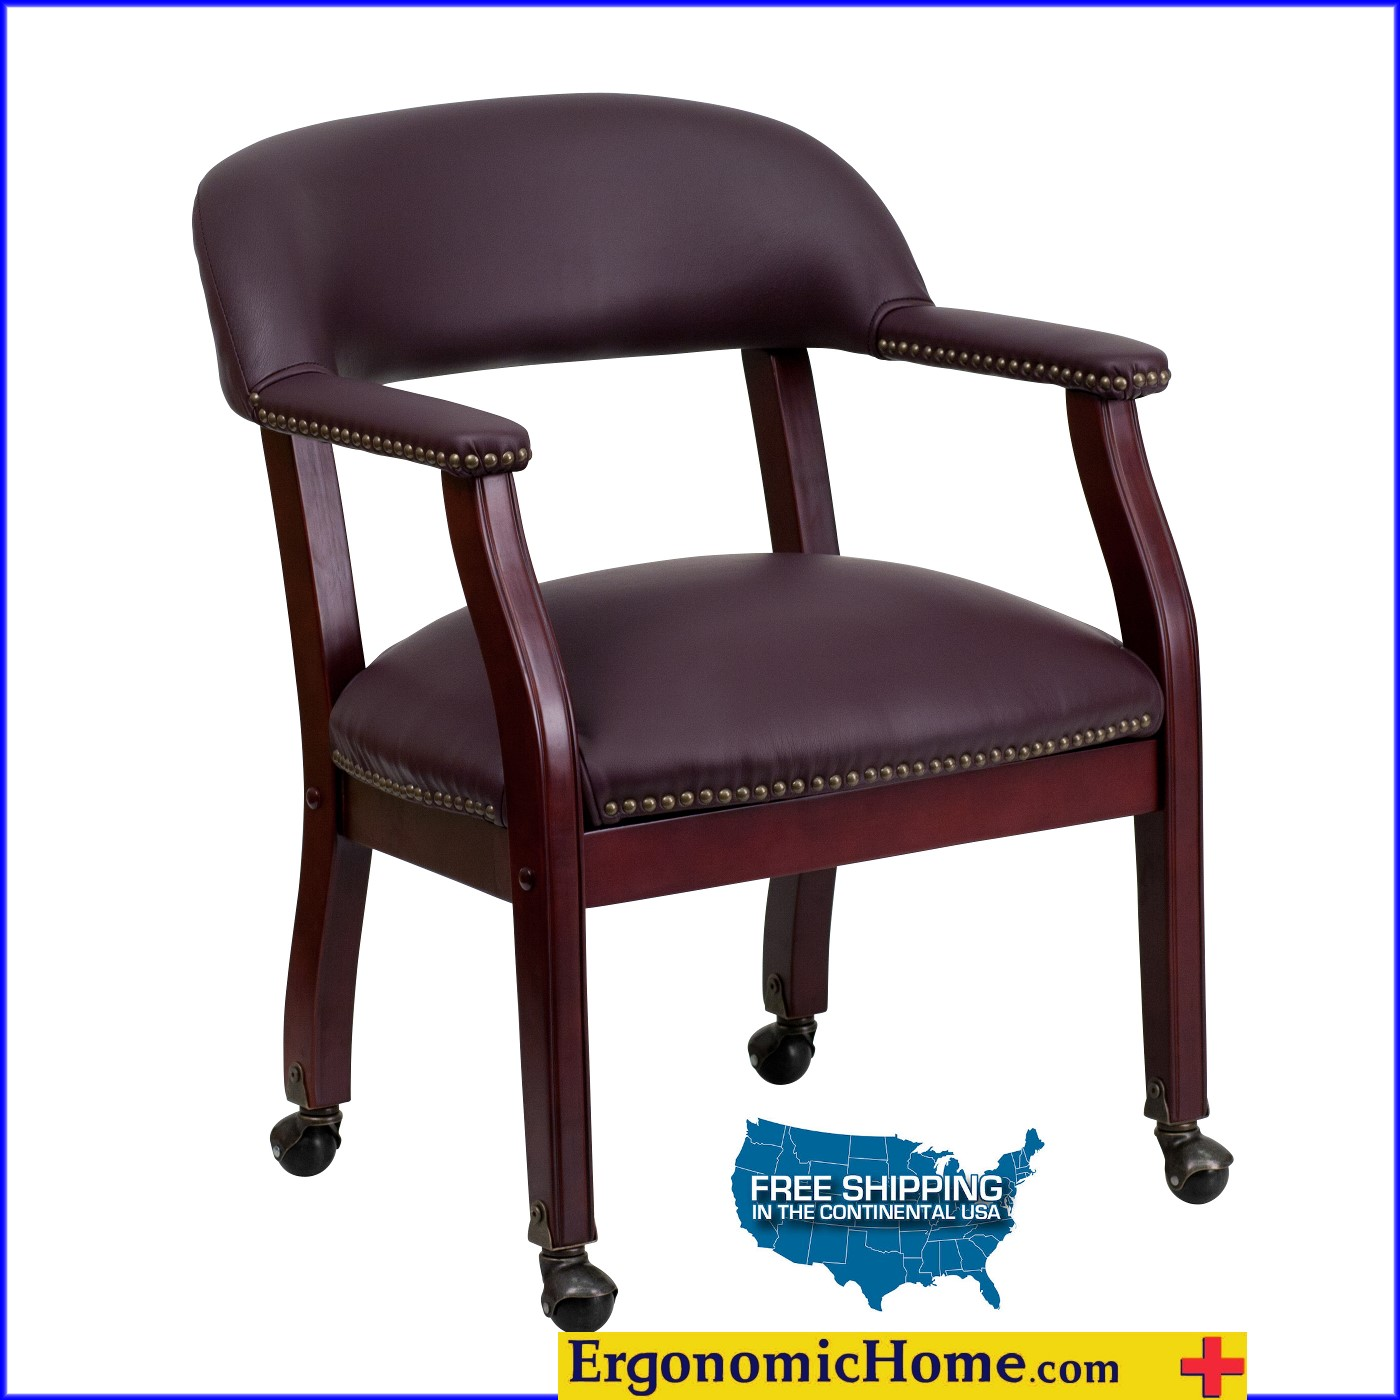 </b></font>Ergonomic Home Burgundy Top Grain Leather Conference Chair/Guest Chair with Casters EH-B-Z100-LF19-LEA-GG <b></font>. </b></font></b>